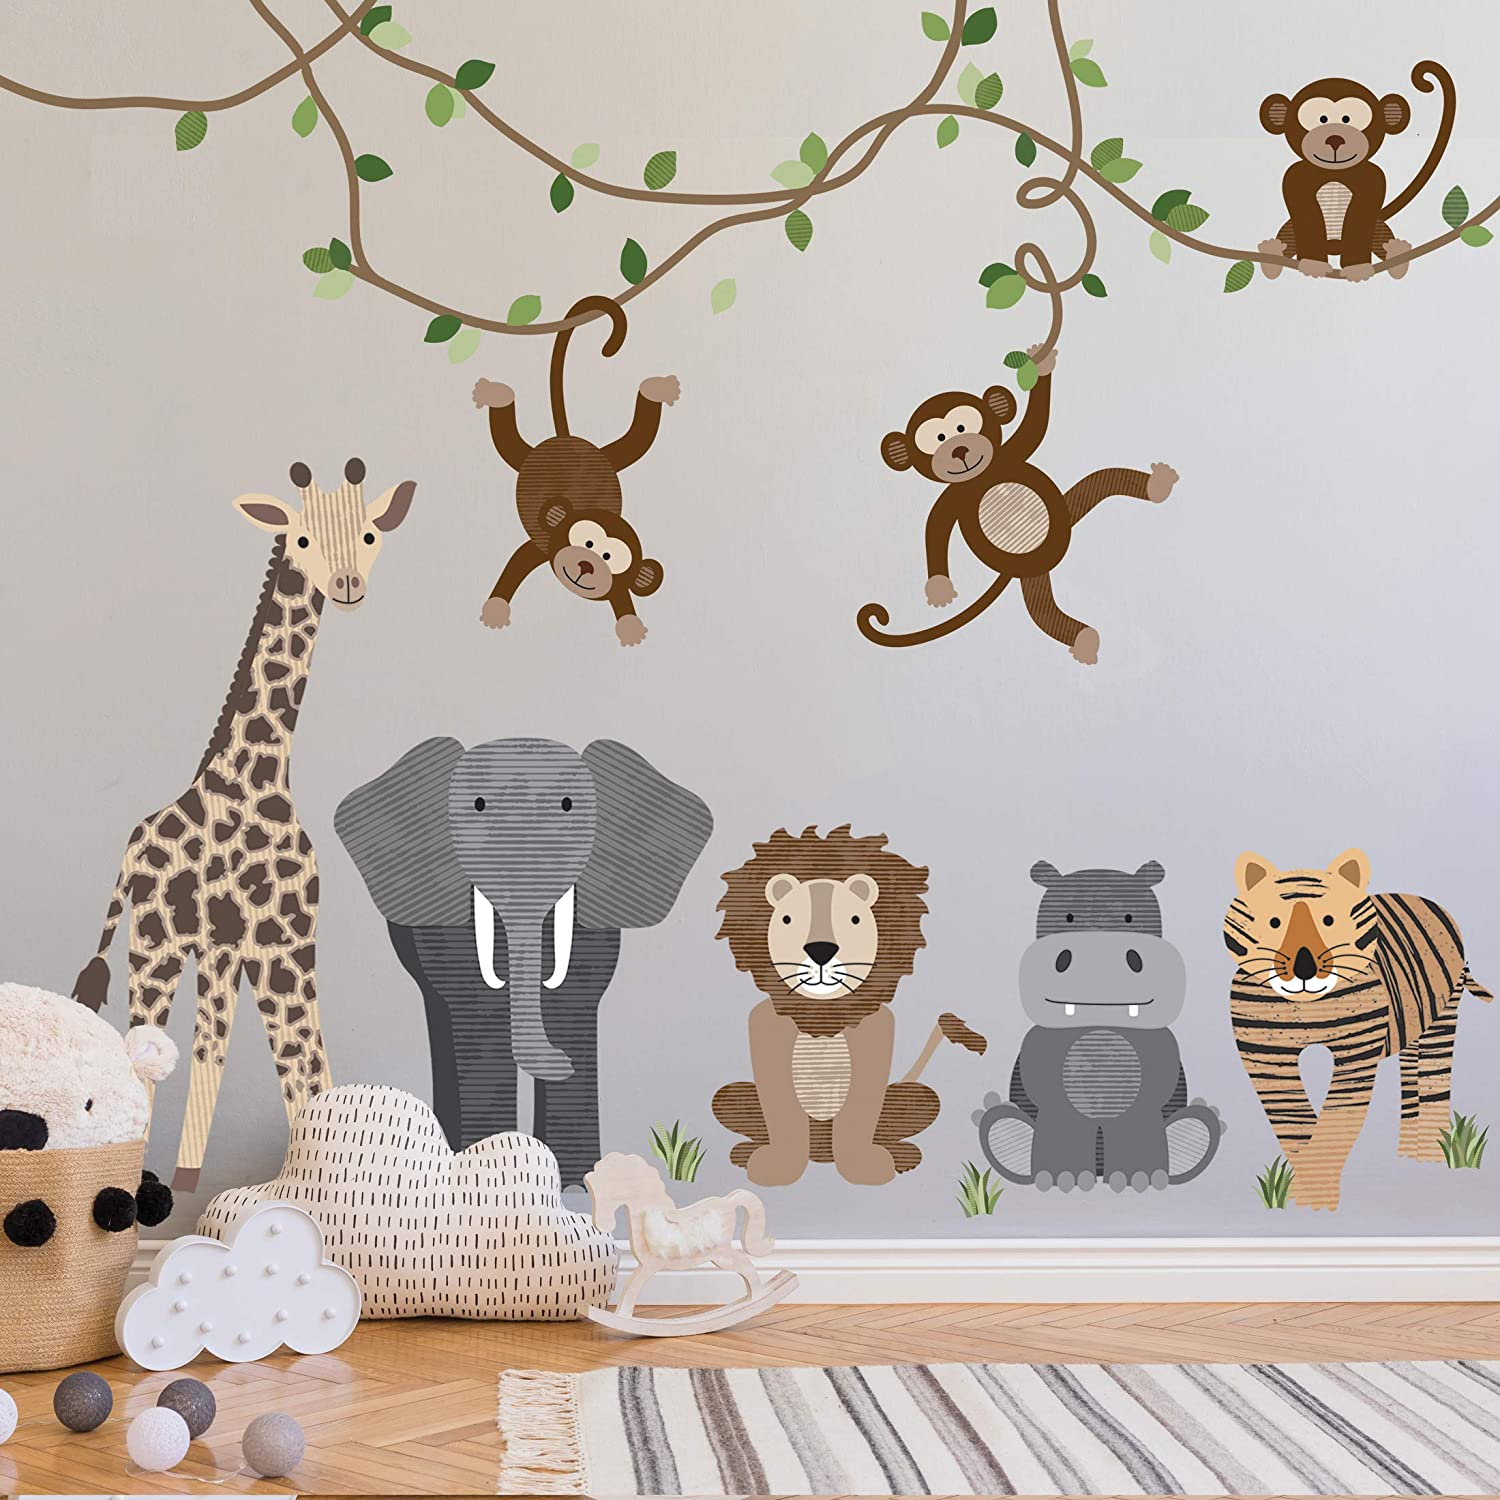 Jungle Animals Vinyl Wall Decals Nursery Jungle Stickers Jungle Animal Decals for Children with Monkey Lion Beards and Alligator